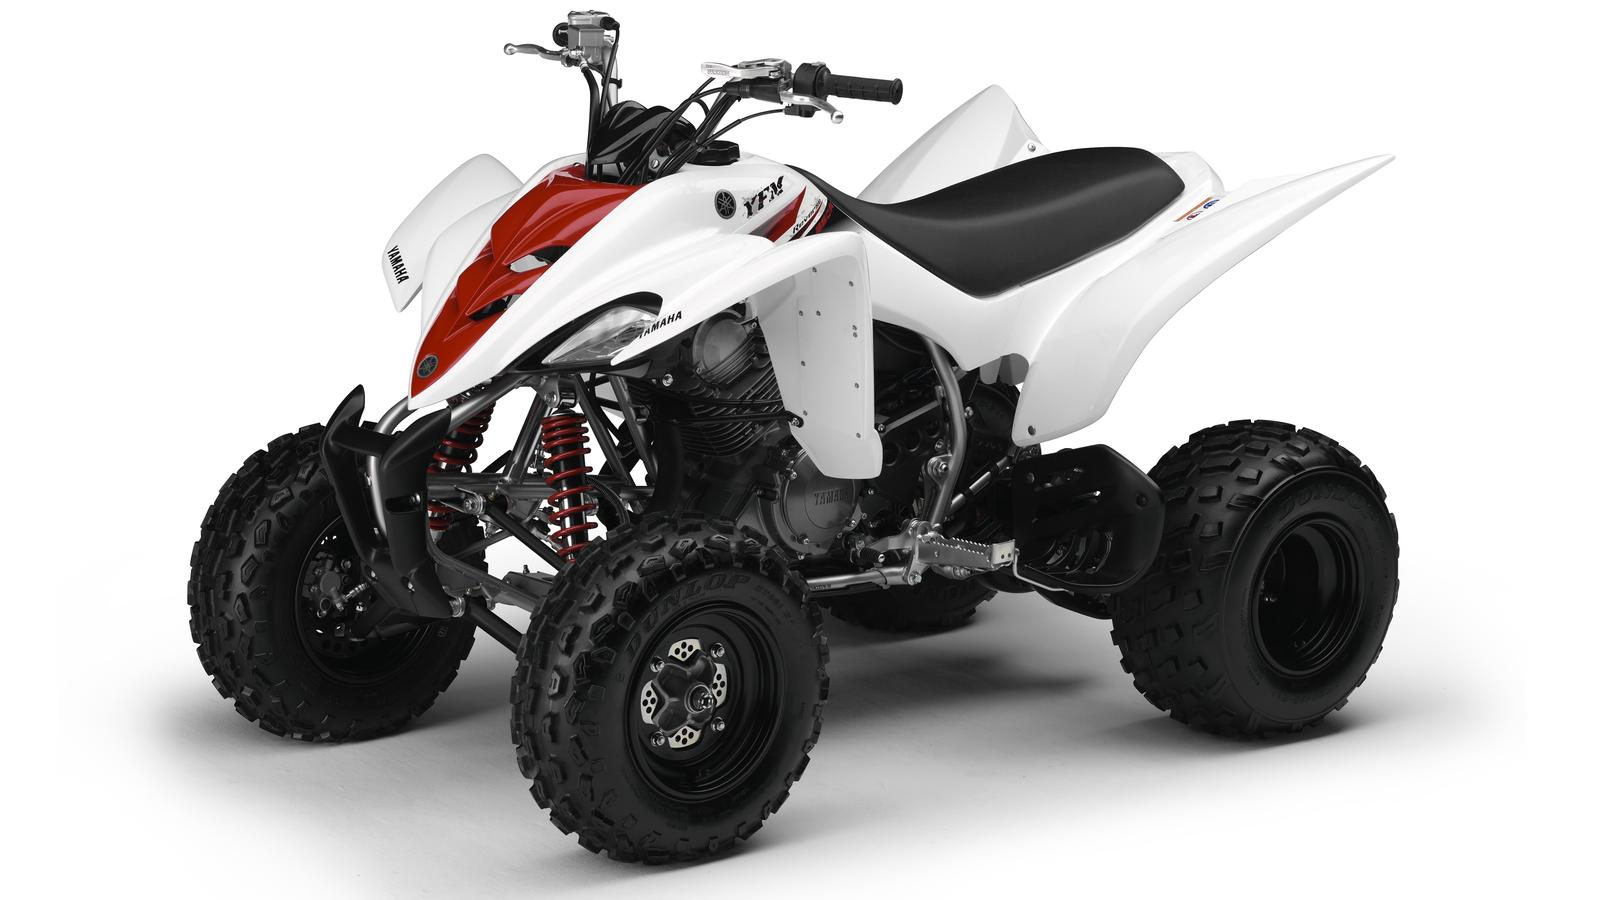 YAMAHA YFM 350 R Raptor  2011 photo 4